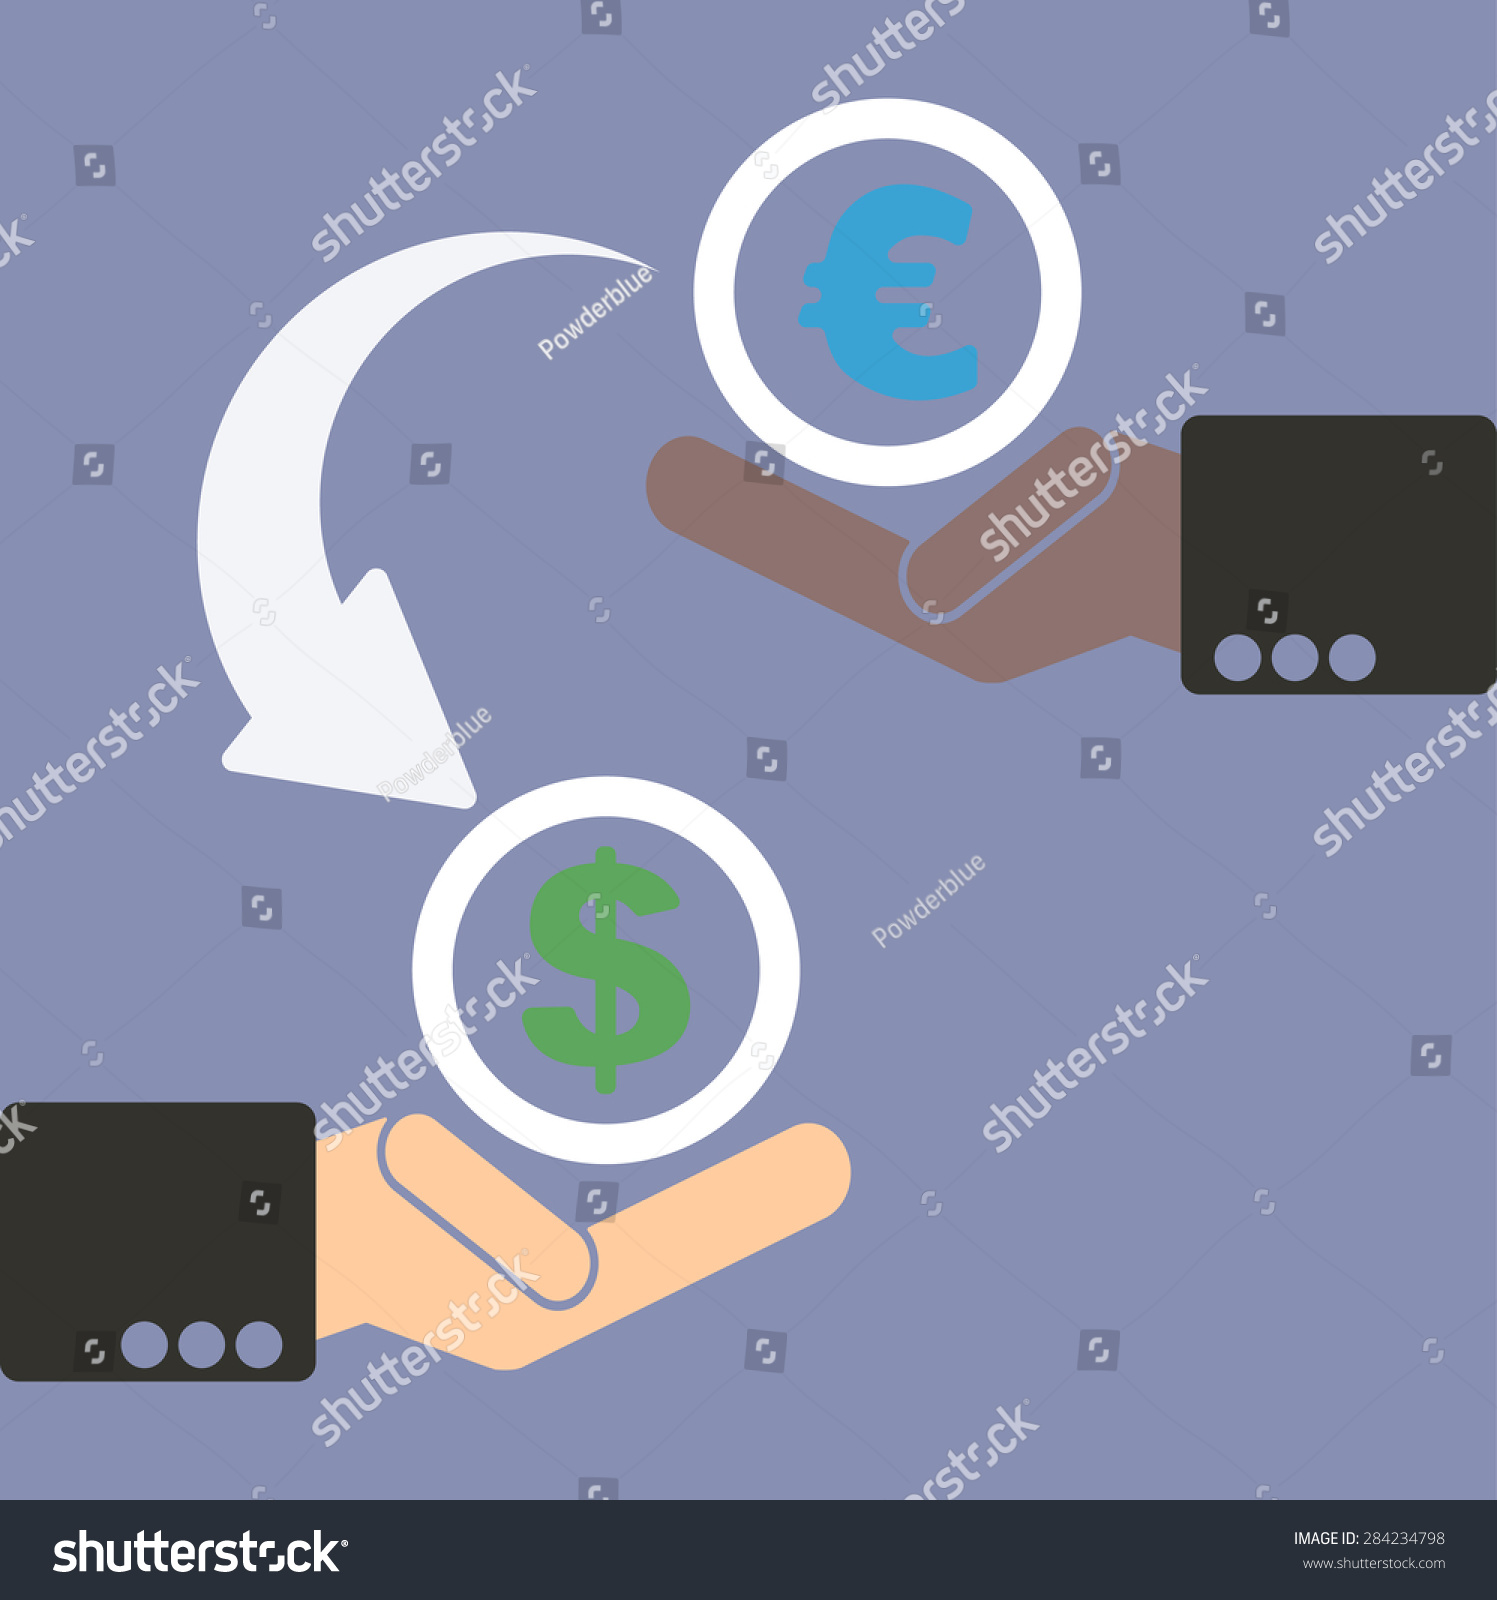 Human hand currency symbols market stock stock vector 284234798 human hand with currency symbols for market and stock money exchange concept in vector euro biocorpaavc Gallery